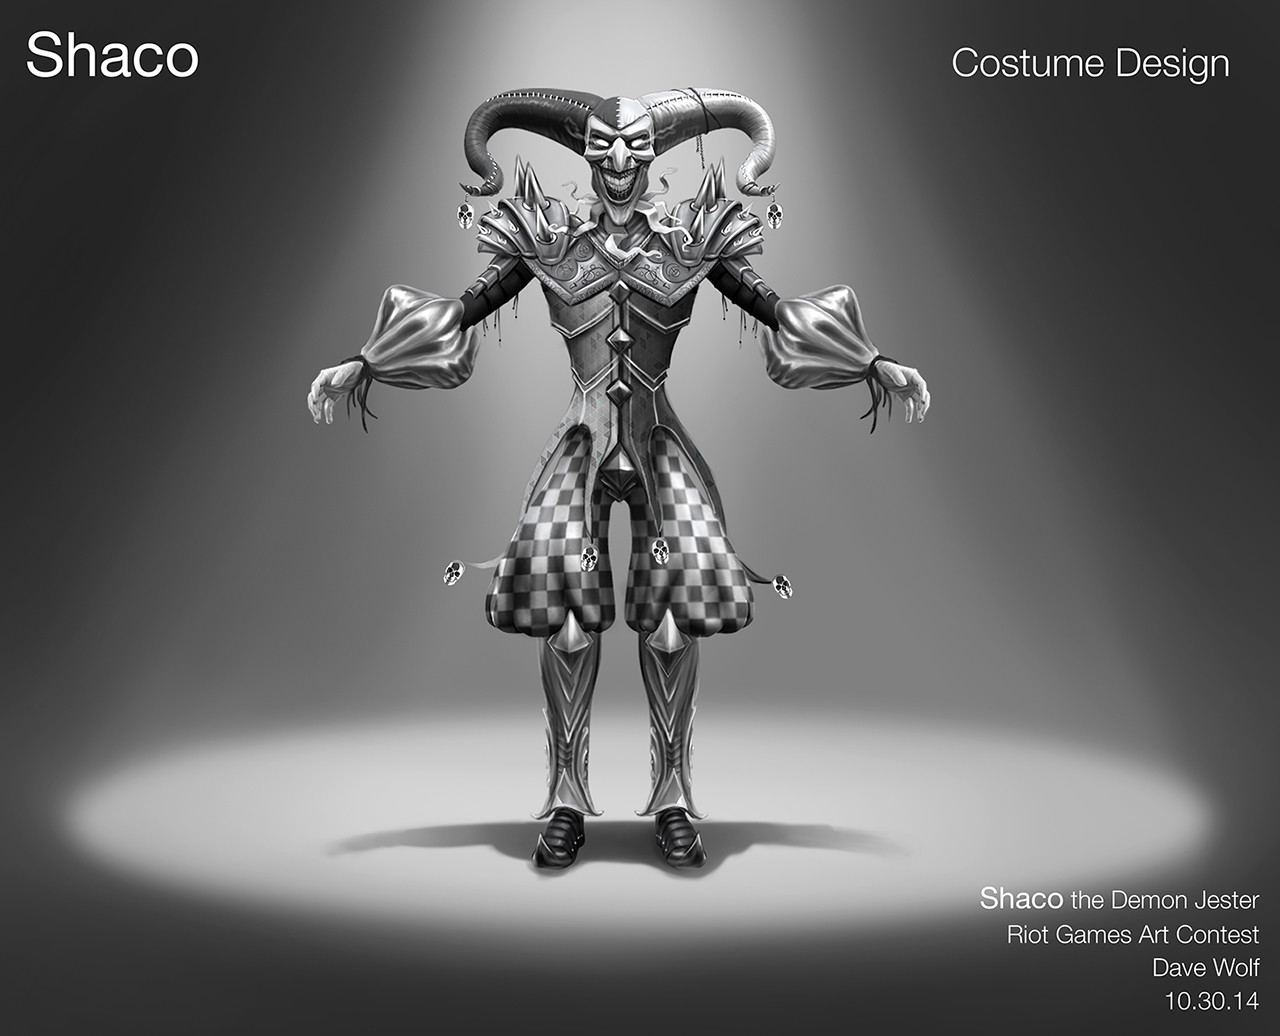 Dave wolf shaco costume design dw 03